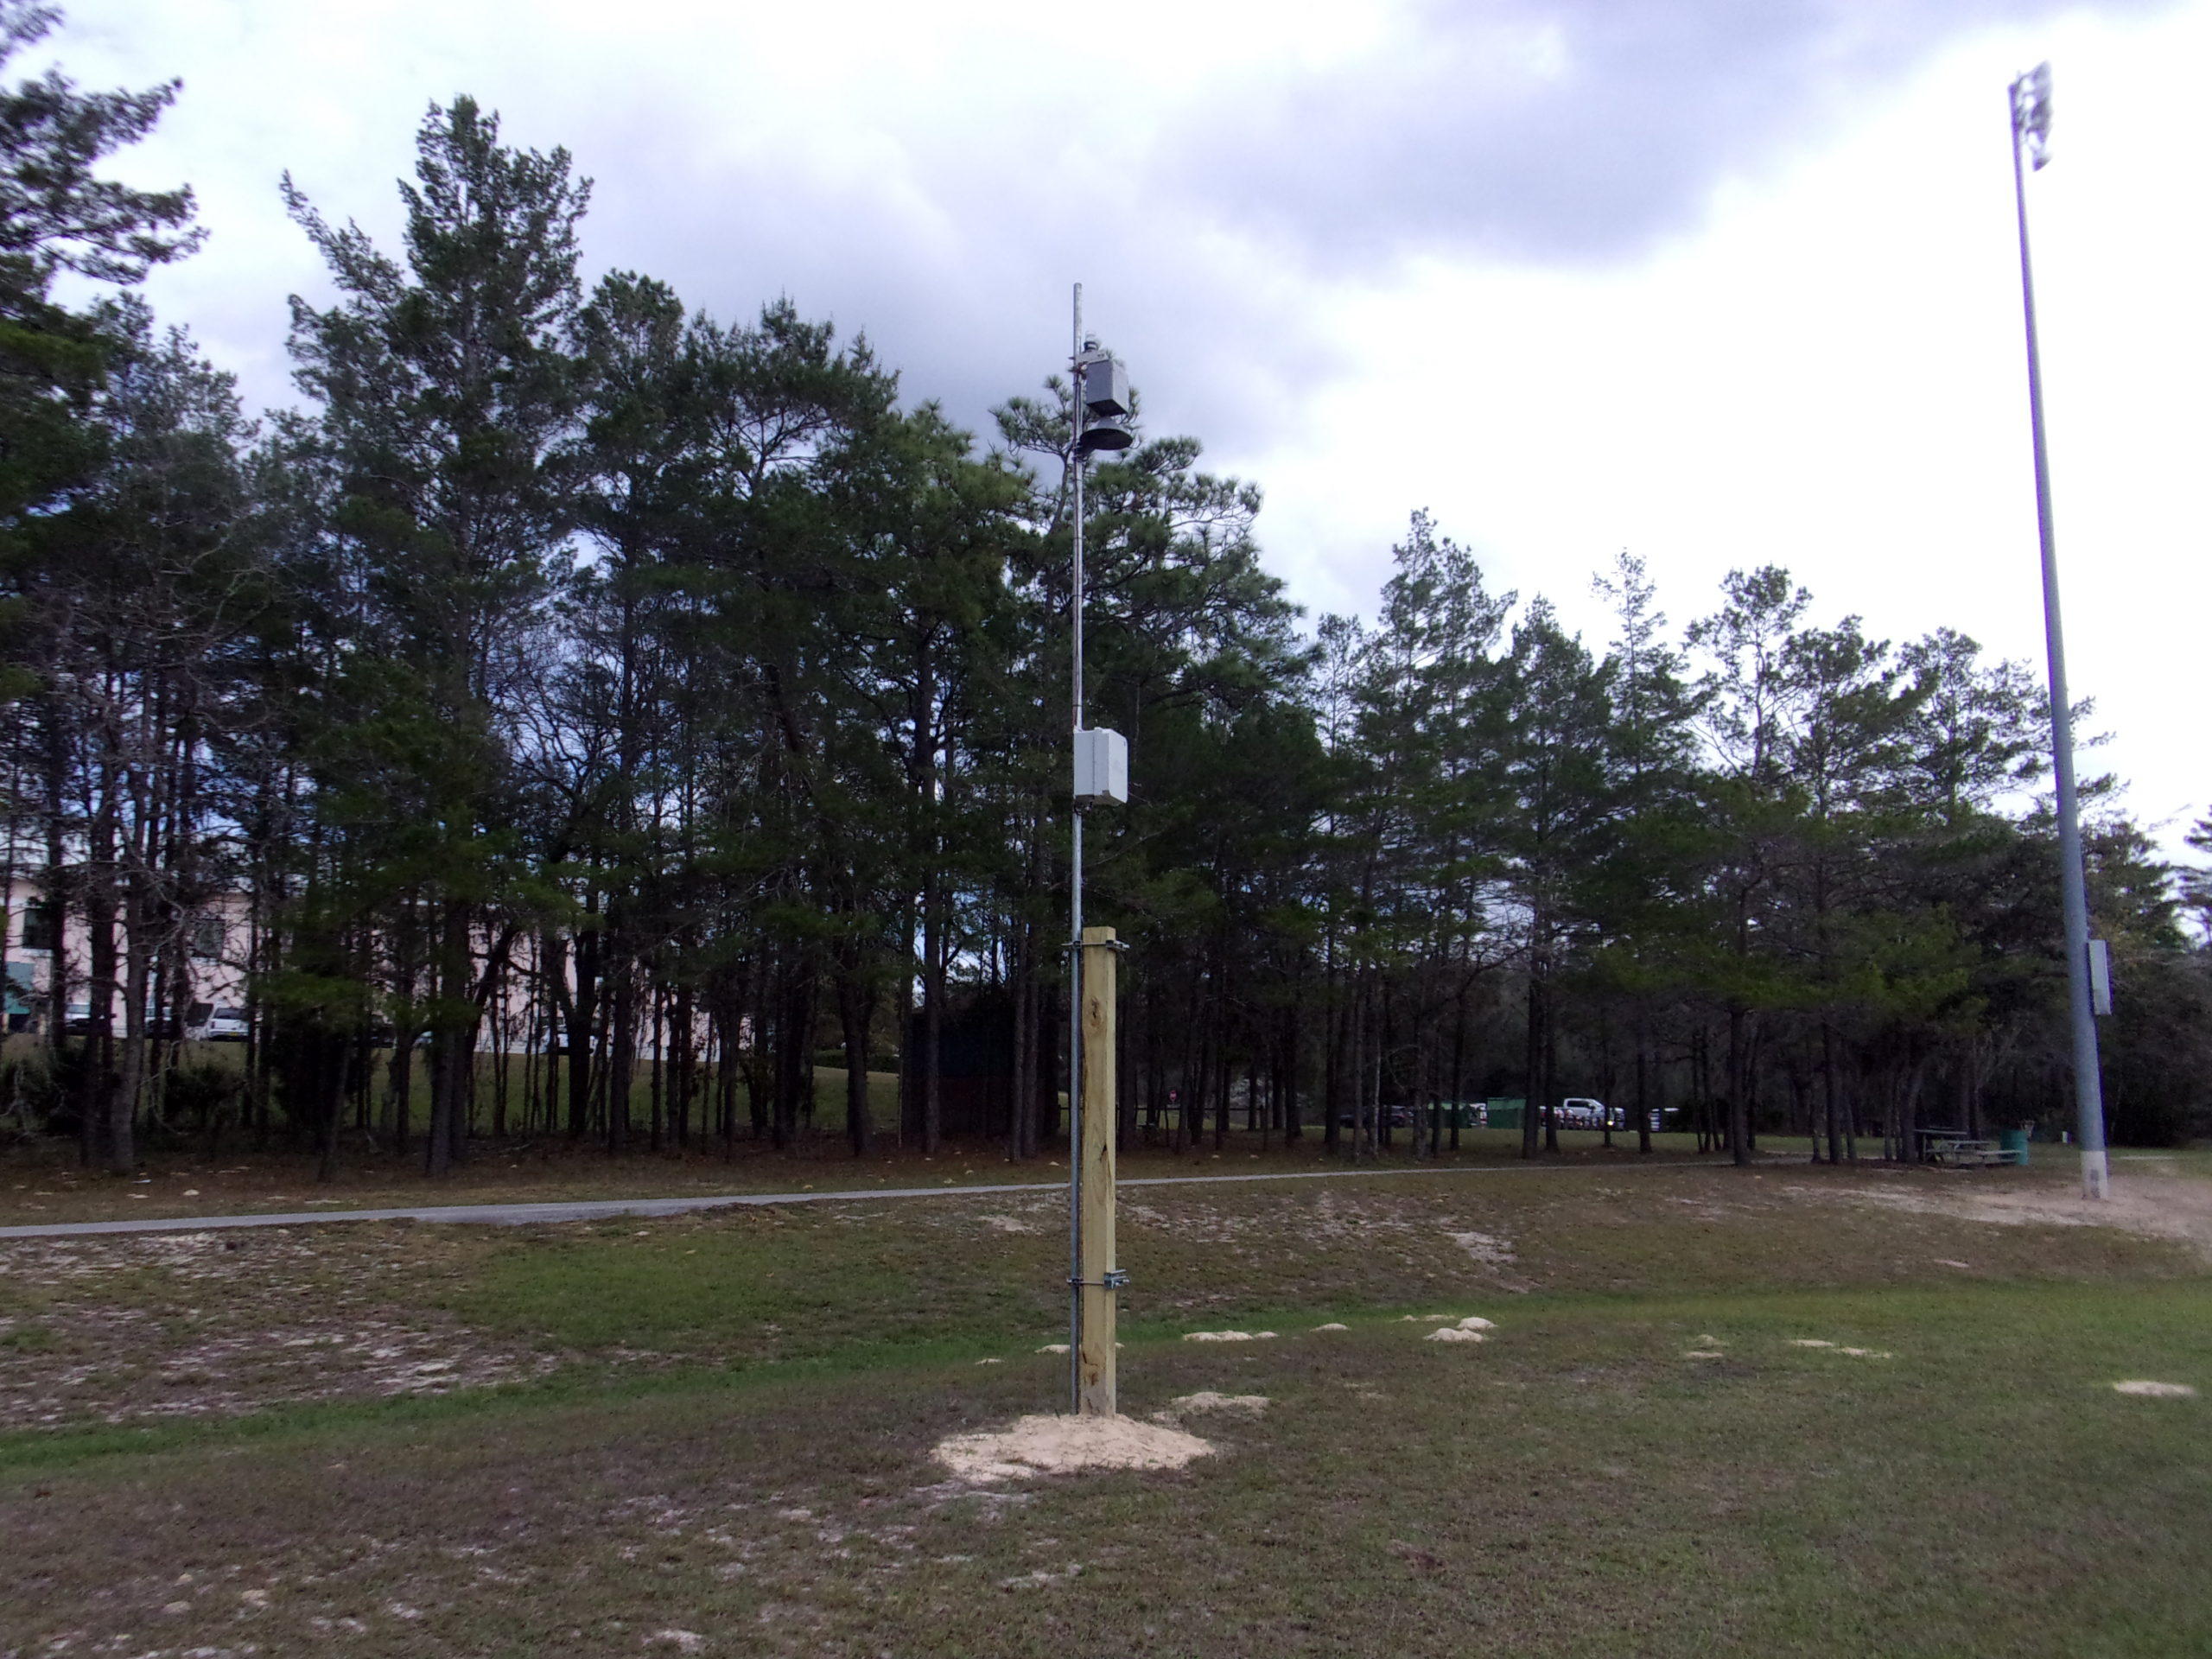 Citrus County Board of County Commissioners approved a seven-year lease agreement with Earth Networks for a Lightning Detection Alert System